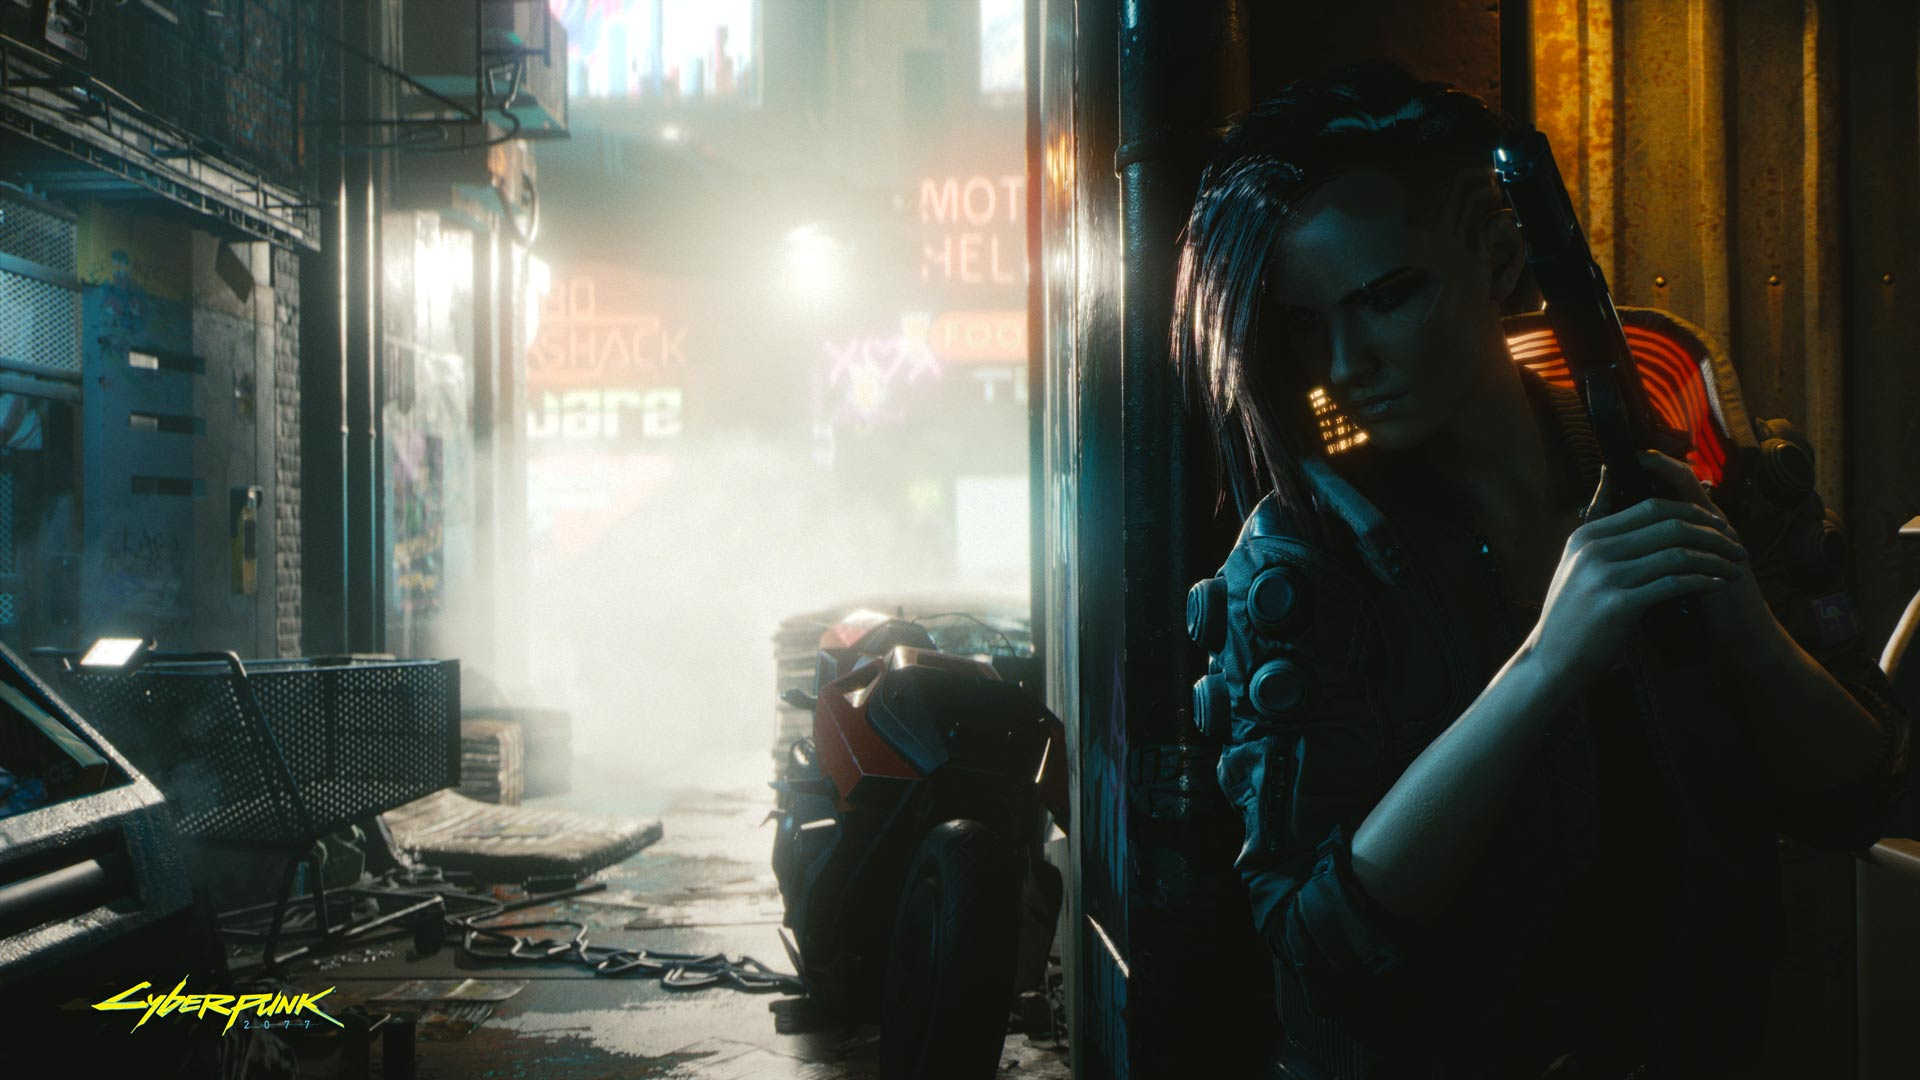 CD Projekt RED Announces Cyberpunk 2077 Cosplay Contest